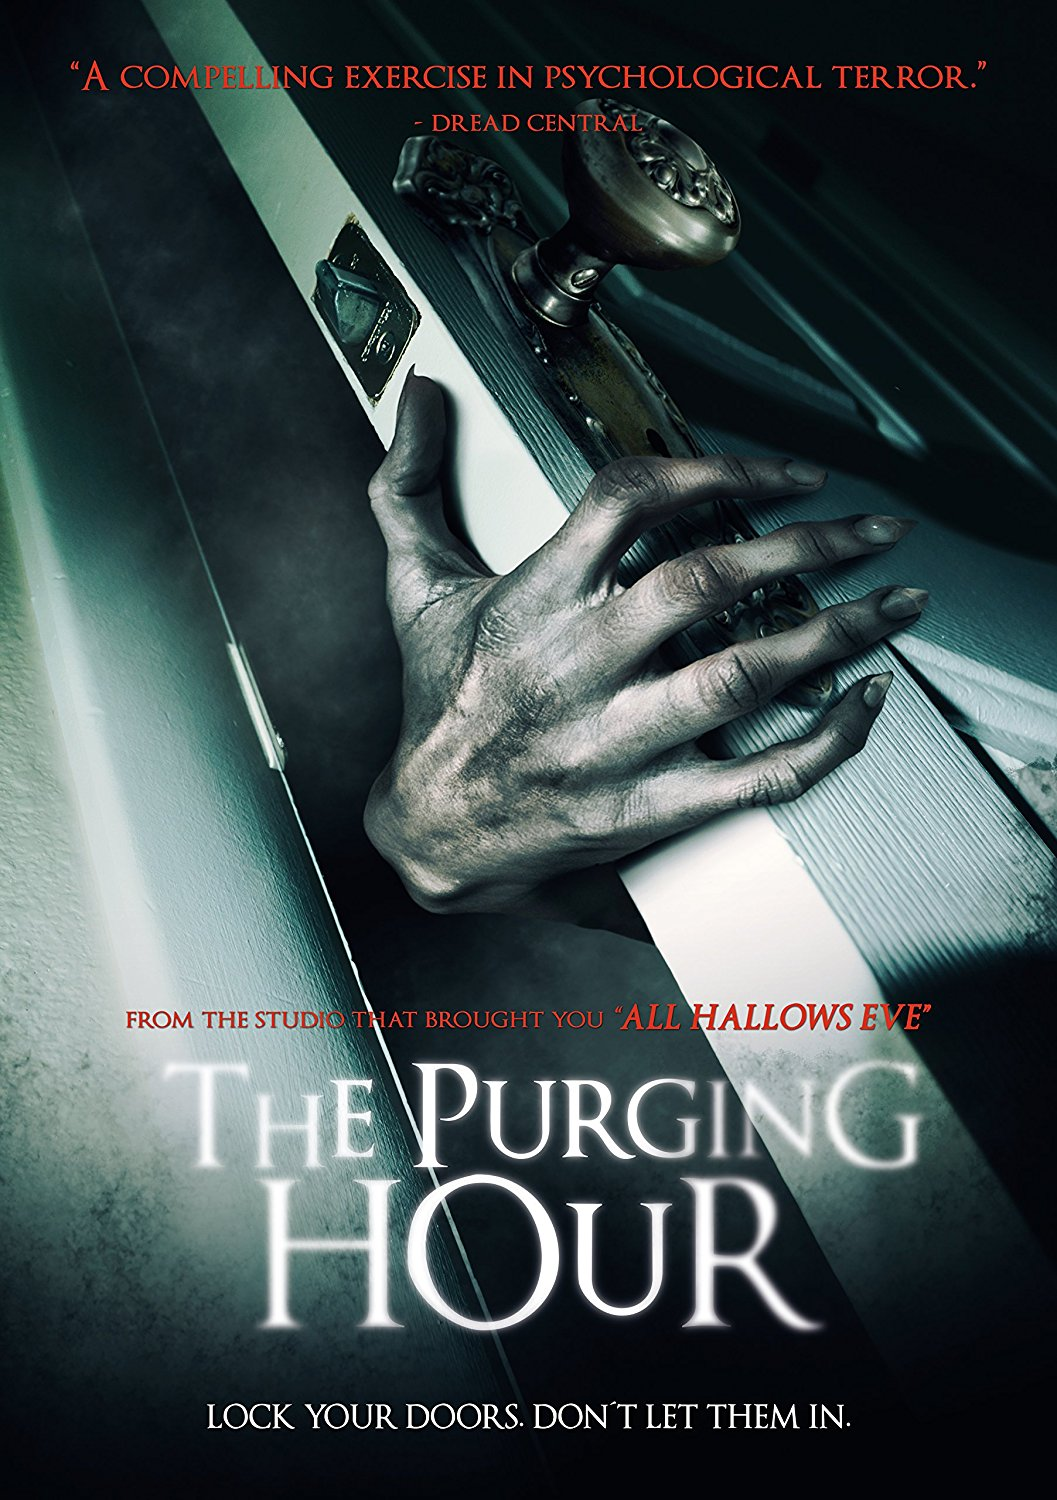 purging hour - It's Time for The Purging Hour